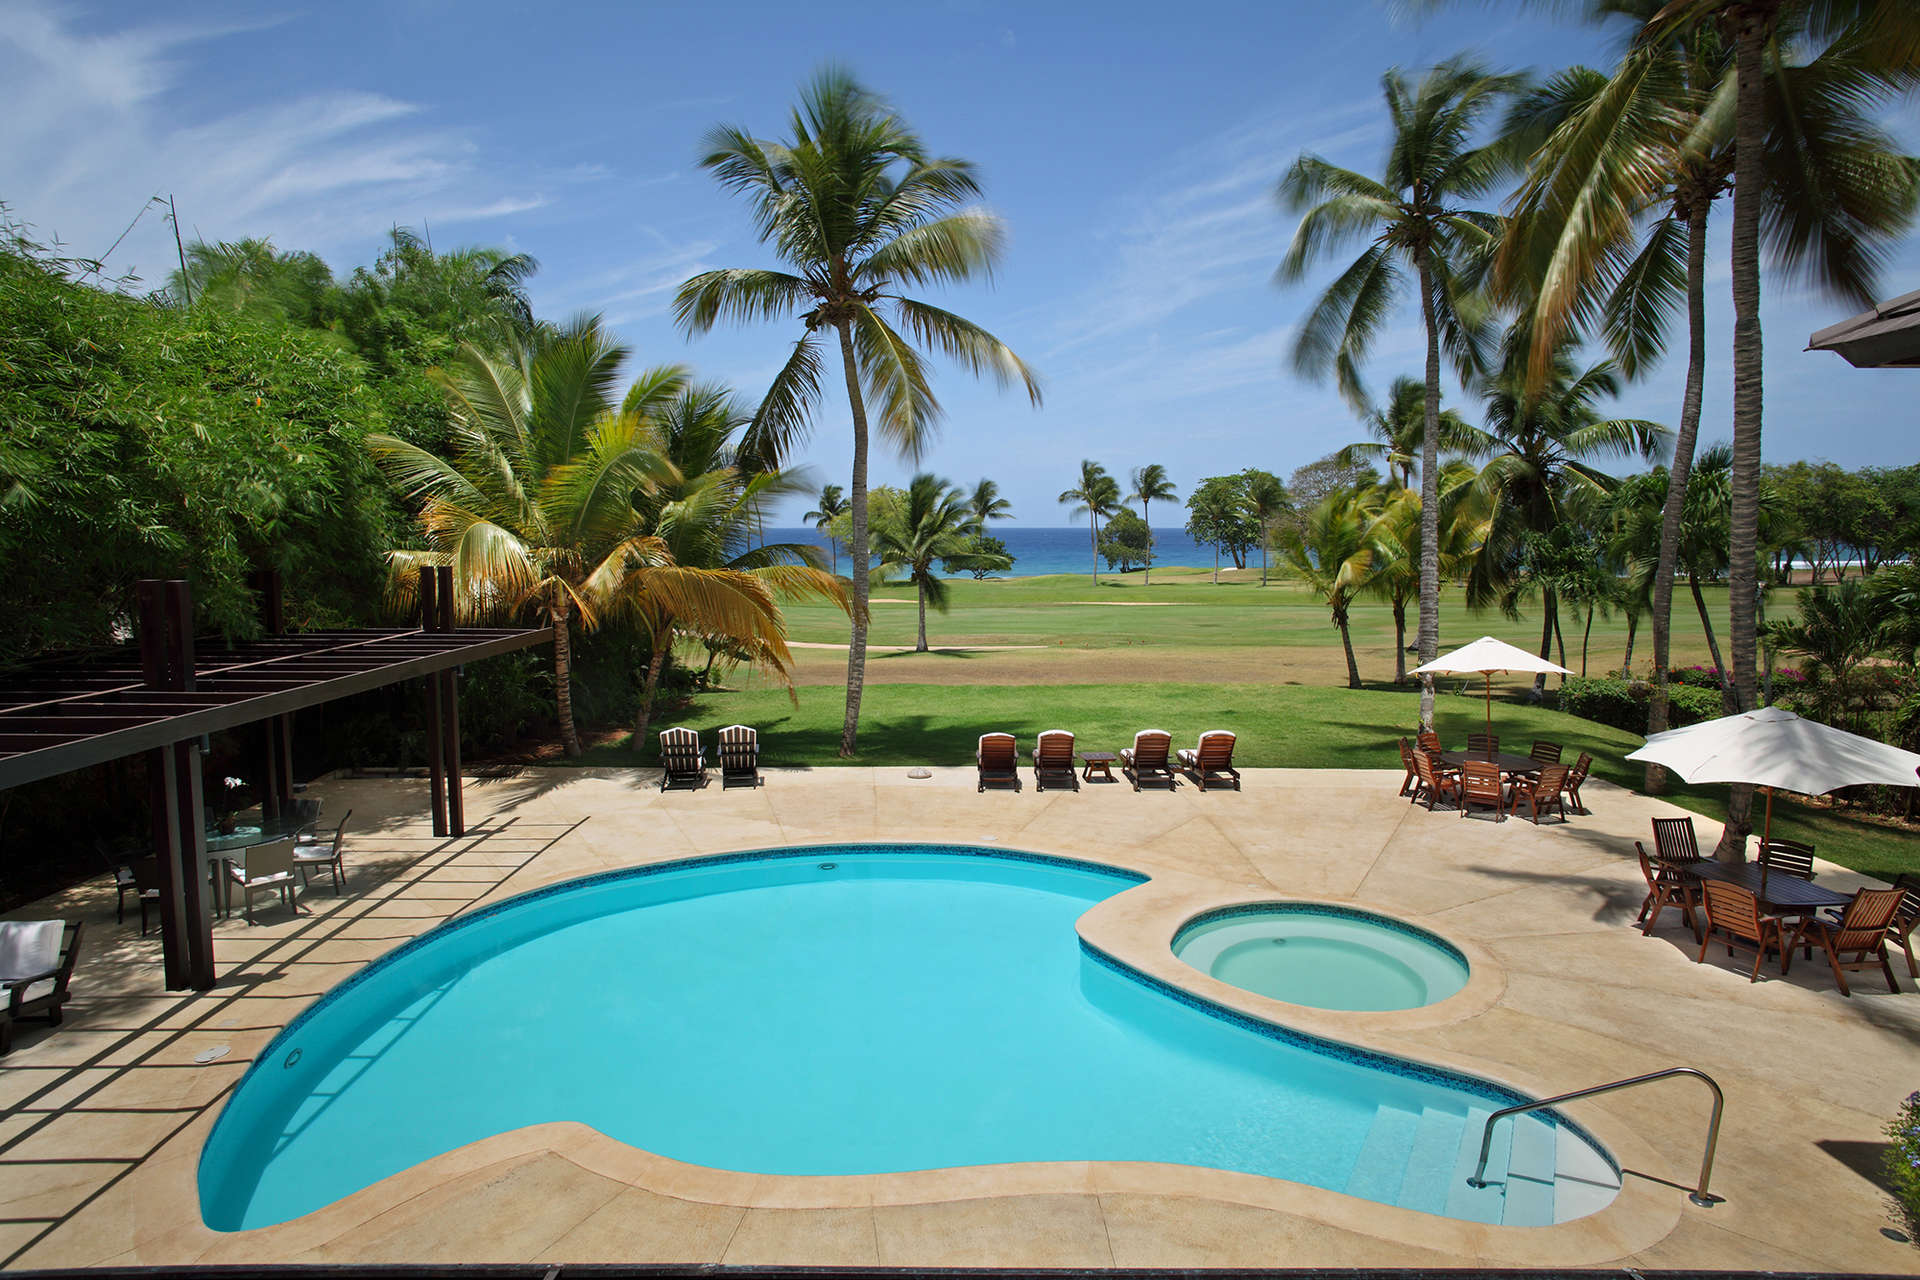 Luxury villa rentals caribbean - Dominican republic - Casa decampo - No location 4 - Cacique 21 - Image 1/25